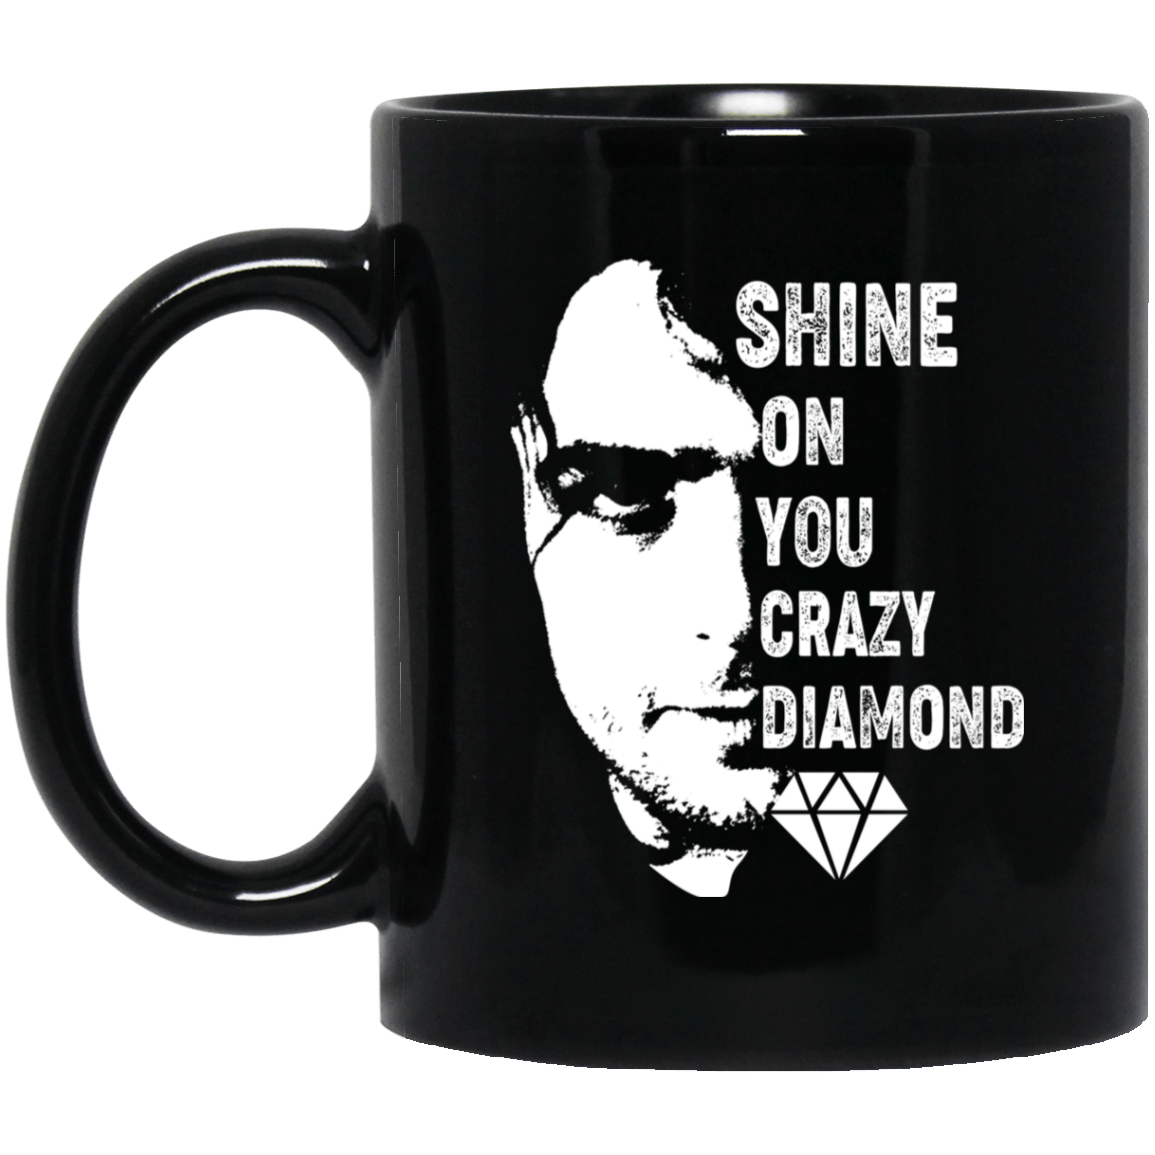 Shine On You Crazy Diamond – Syd Barrett Mug 1065-10181-88282962-49307 - Tee Ript